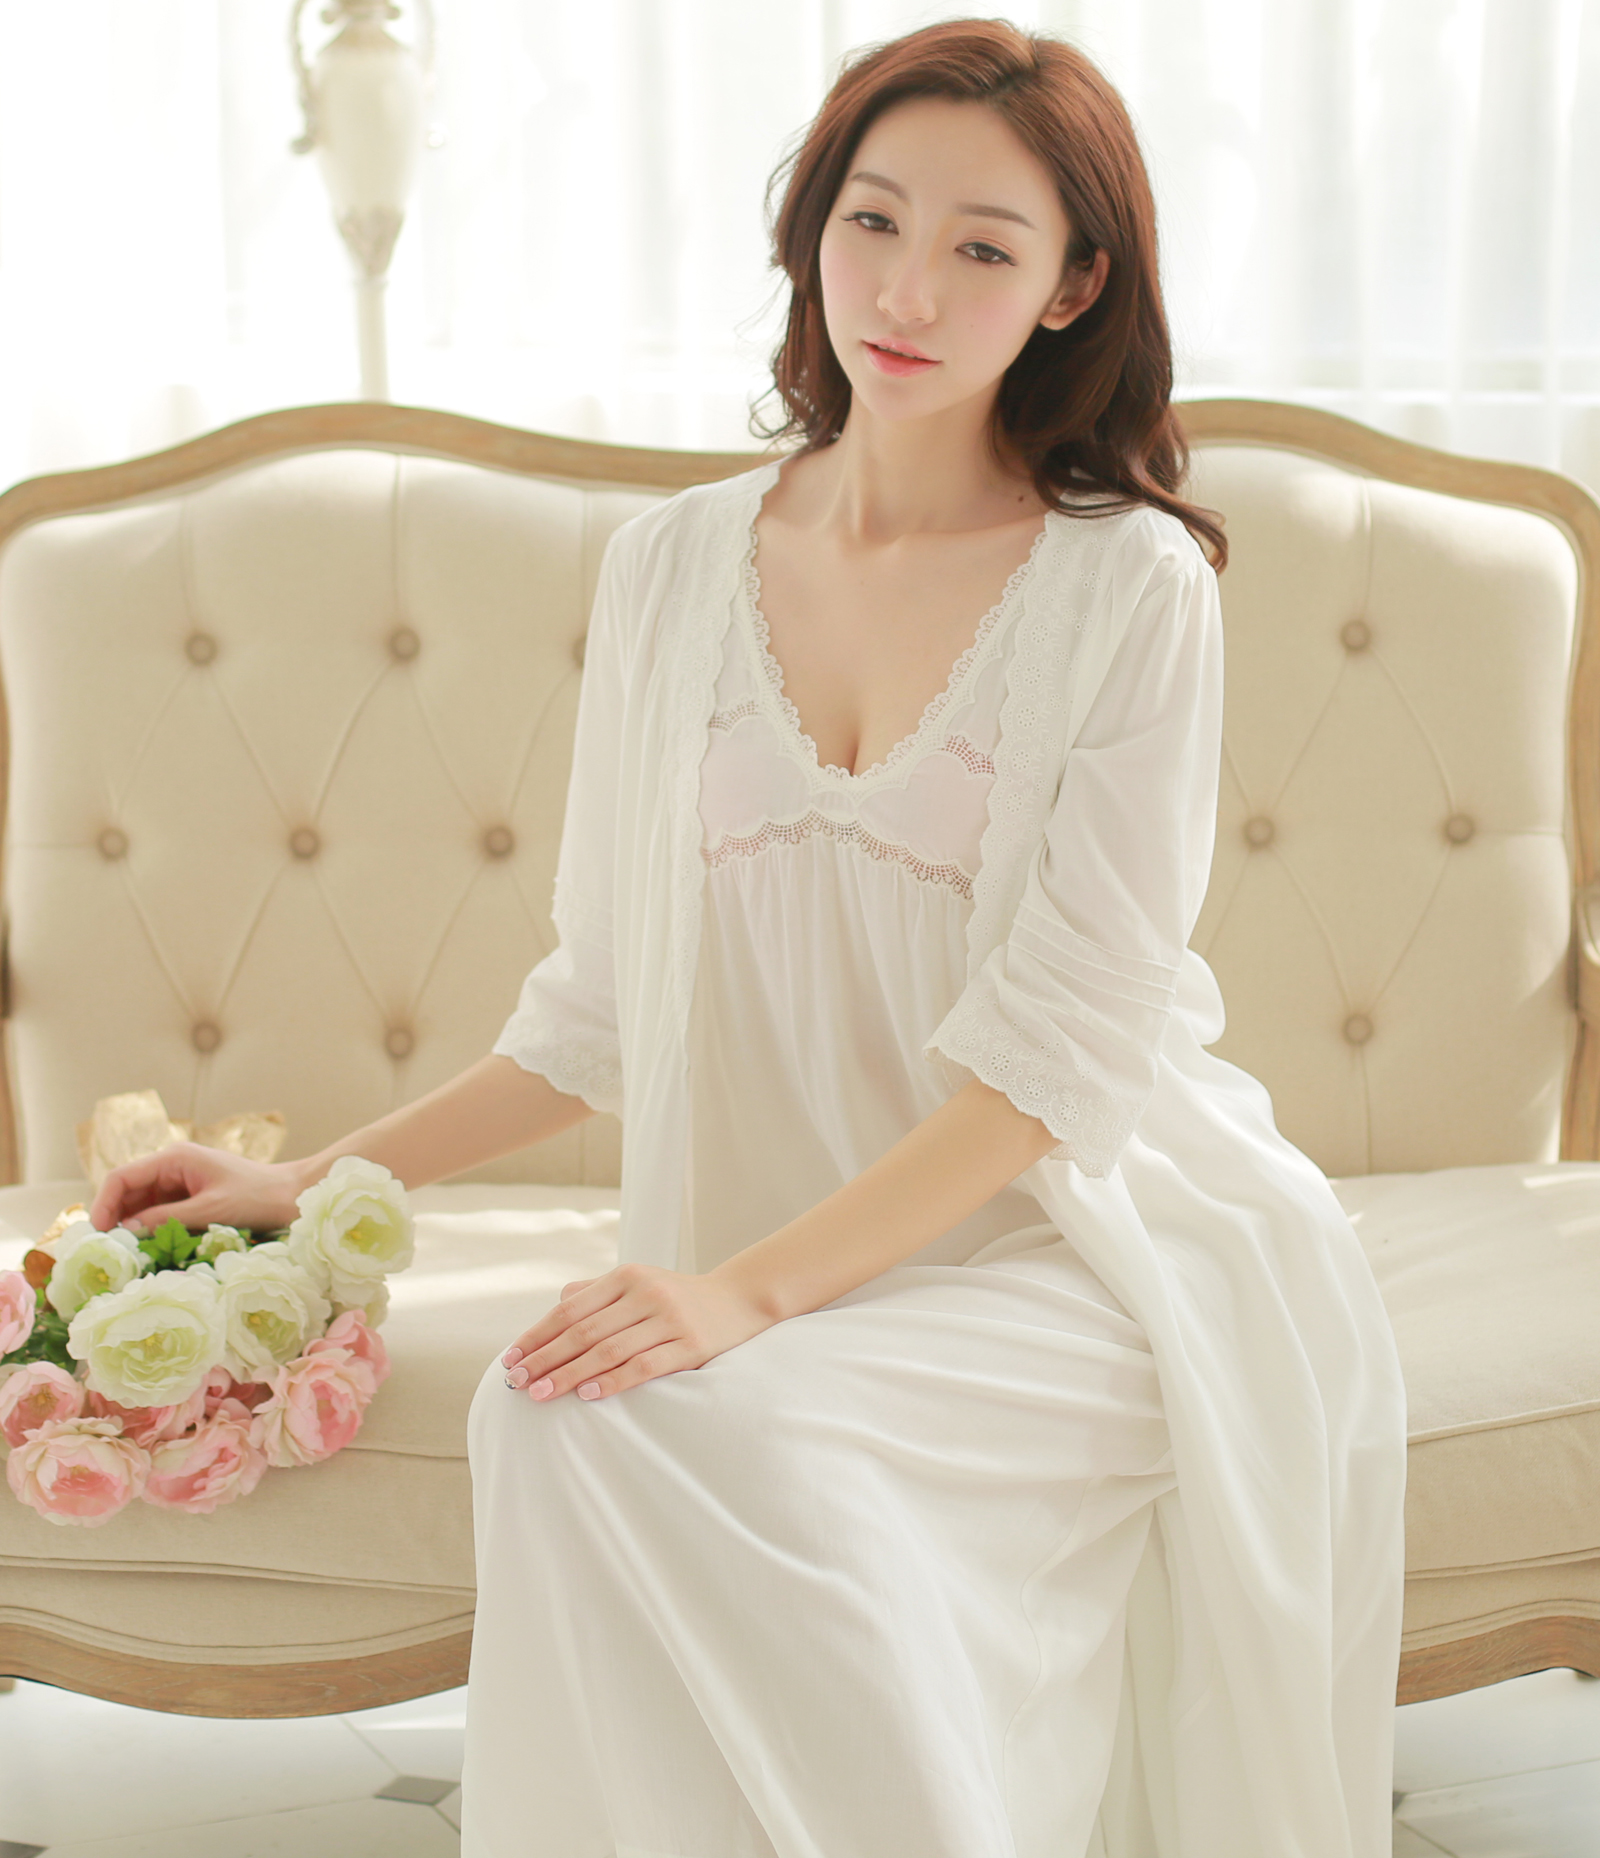 Nightgowns-Sleep-Shirts. Getting a good night's sleep means having the right nightgowns and sleep shirts to choose from. From gowns and caftans to short sleeve shirts and boyfriend shirts, you'll find the perfect pair of cozy pajamas to make your dreams that much sweeter.